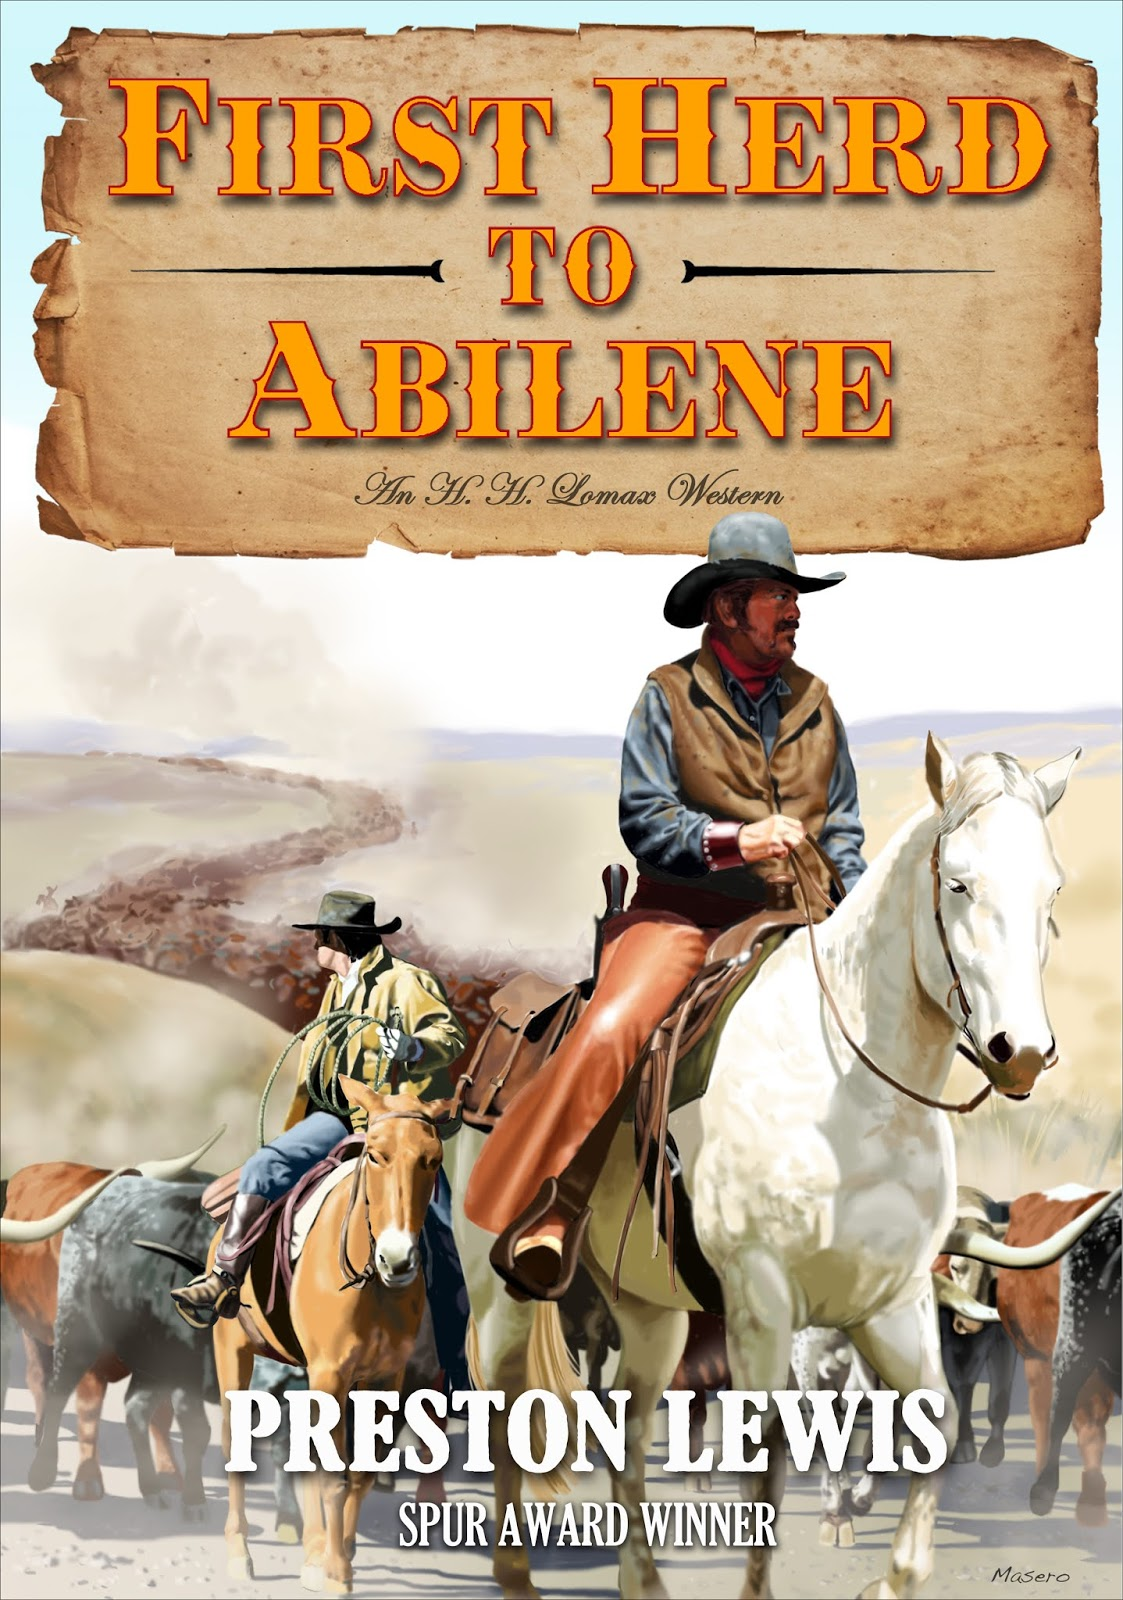 First Herd to Abilene book cover